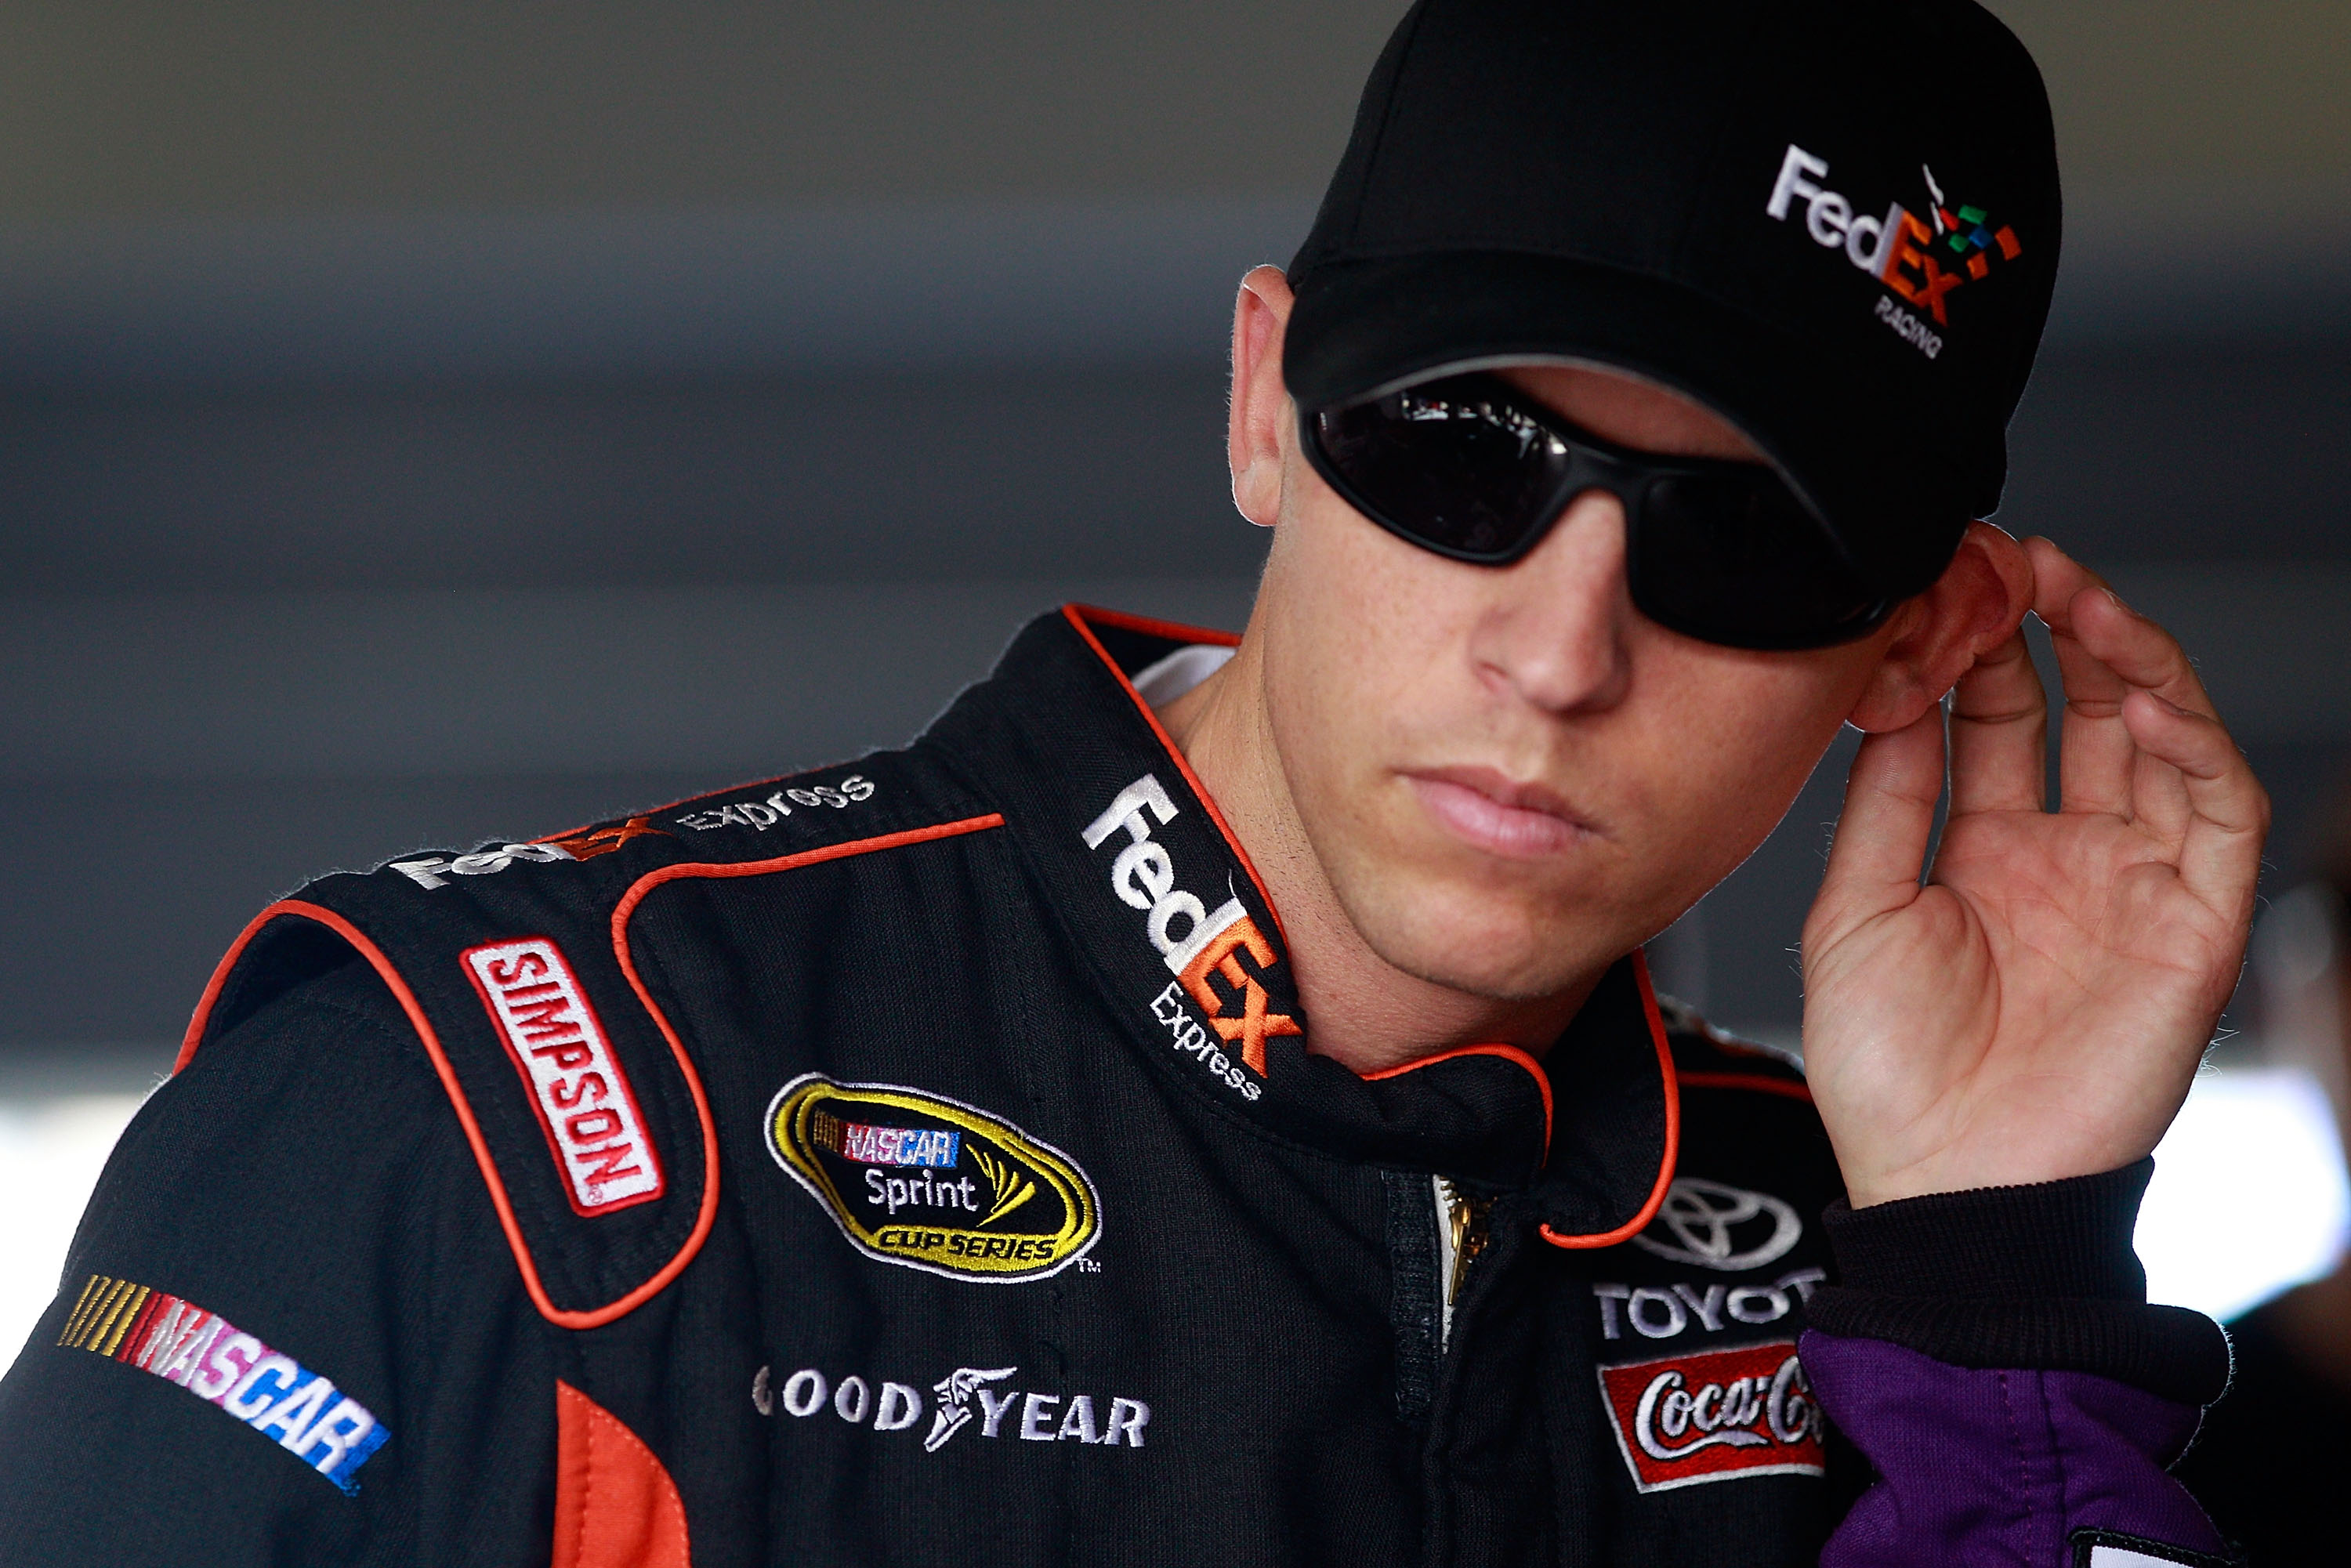 HOMESTEAD, FL - NOVEMBER 19:  Denny Hamlin, driver of the #11 FedEx Toyota, stands in the garage during practice for the NASCAR Sprint Cup Series Ford 400 at Homestead-Miami Speedway on November 19, 2010 in Homestead, Florida.  (Photo by Chris Graythen/Ge